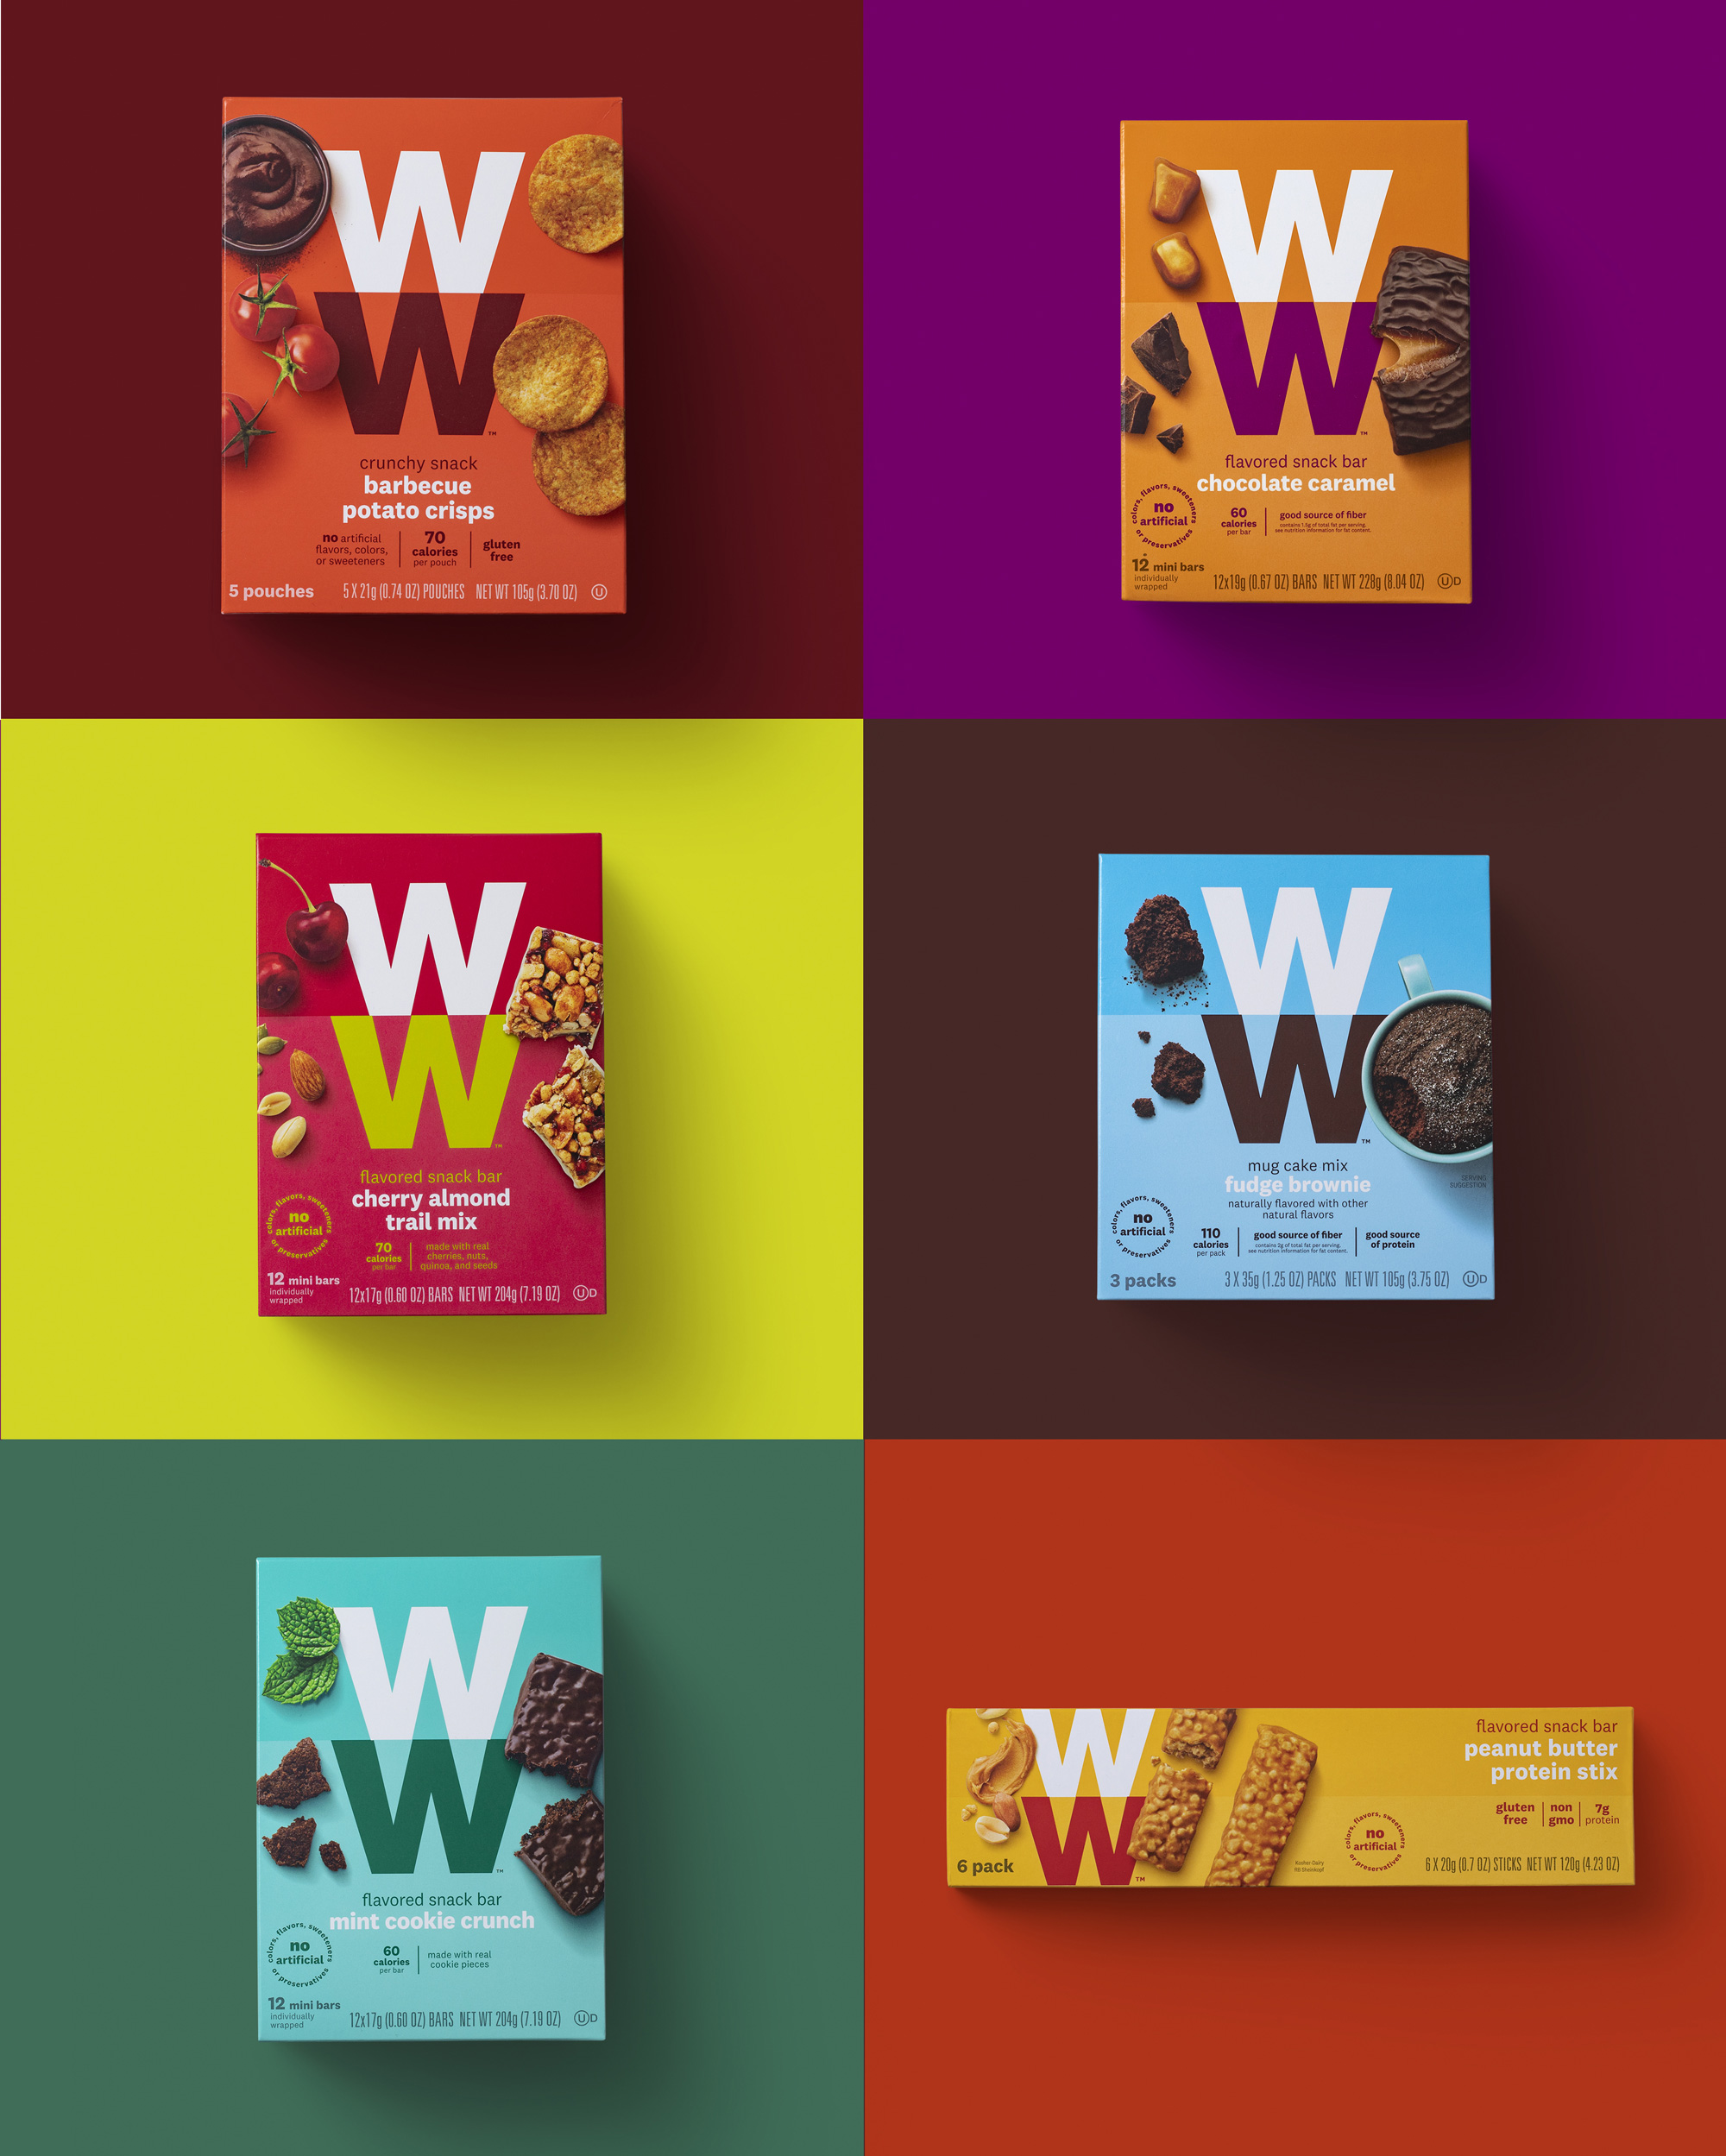 Packaging for WW by Pearlfisher